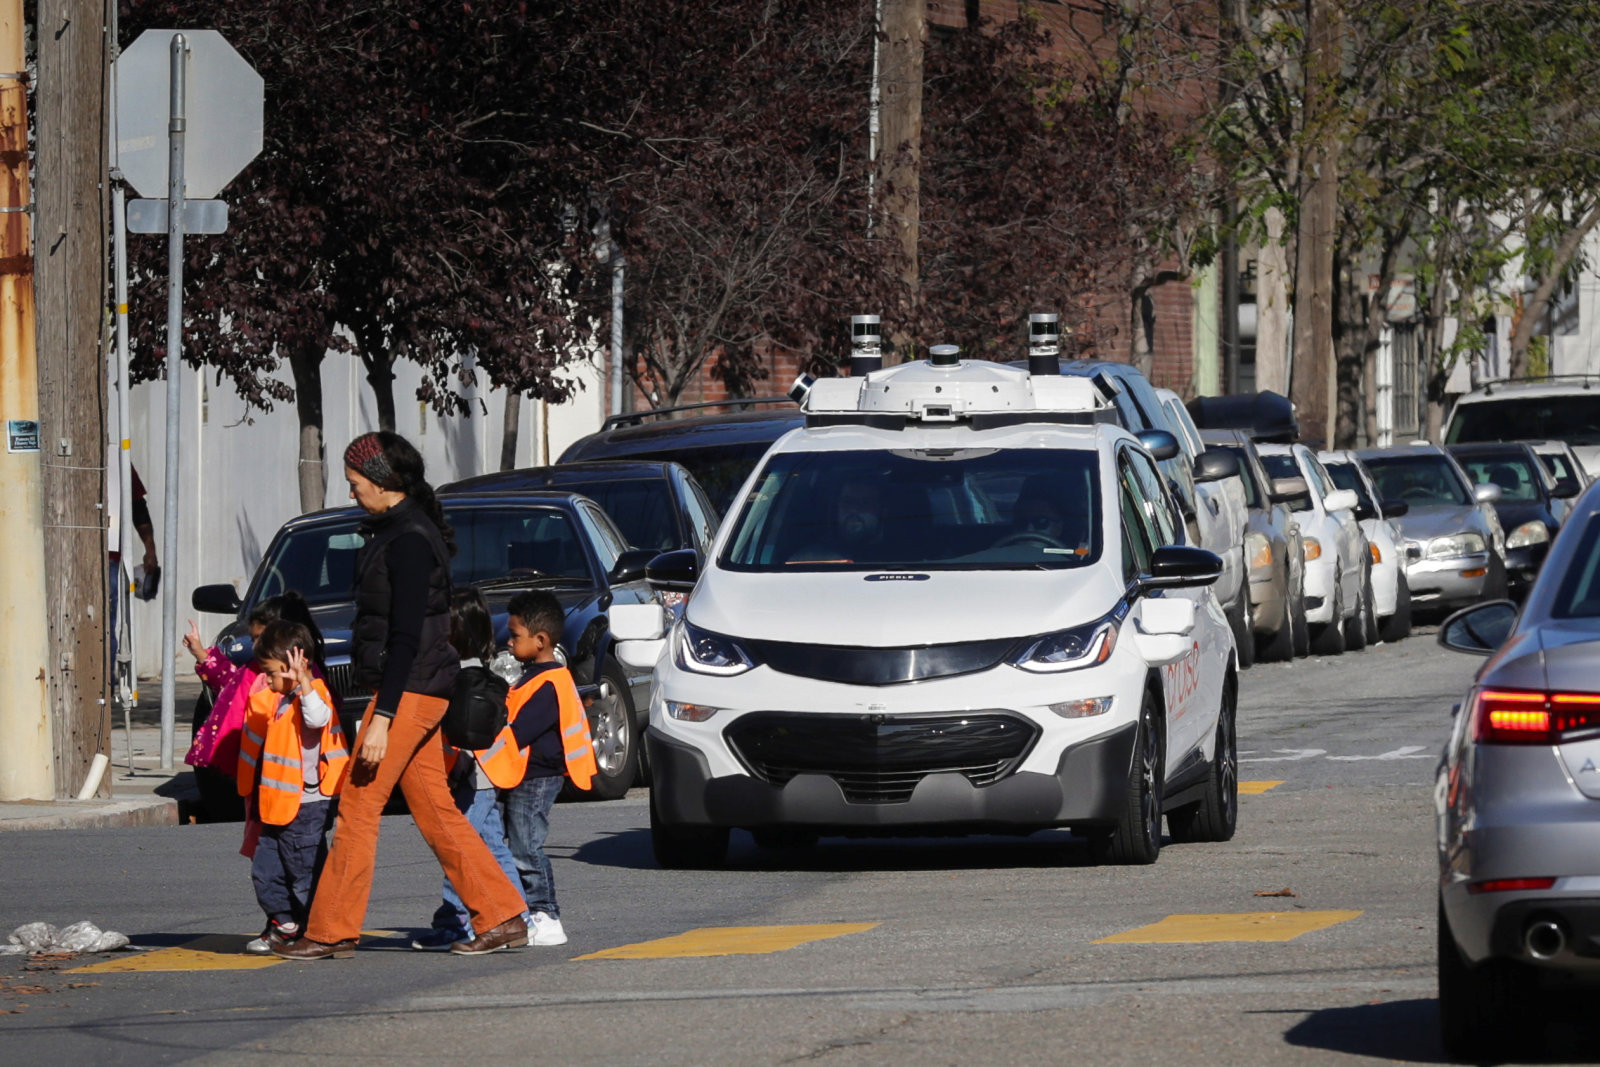 Children pass by a self-driving Chevy Bolt EV car during a media event by Cruise, GM's autonomous car unit,  in San Francisco, California, U.S. November 28, 2017. REUTERS/Elijah Nouvelage